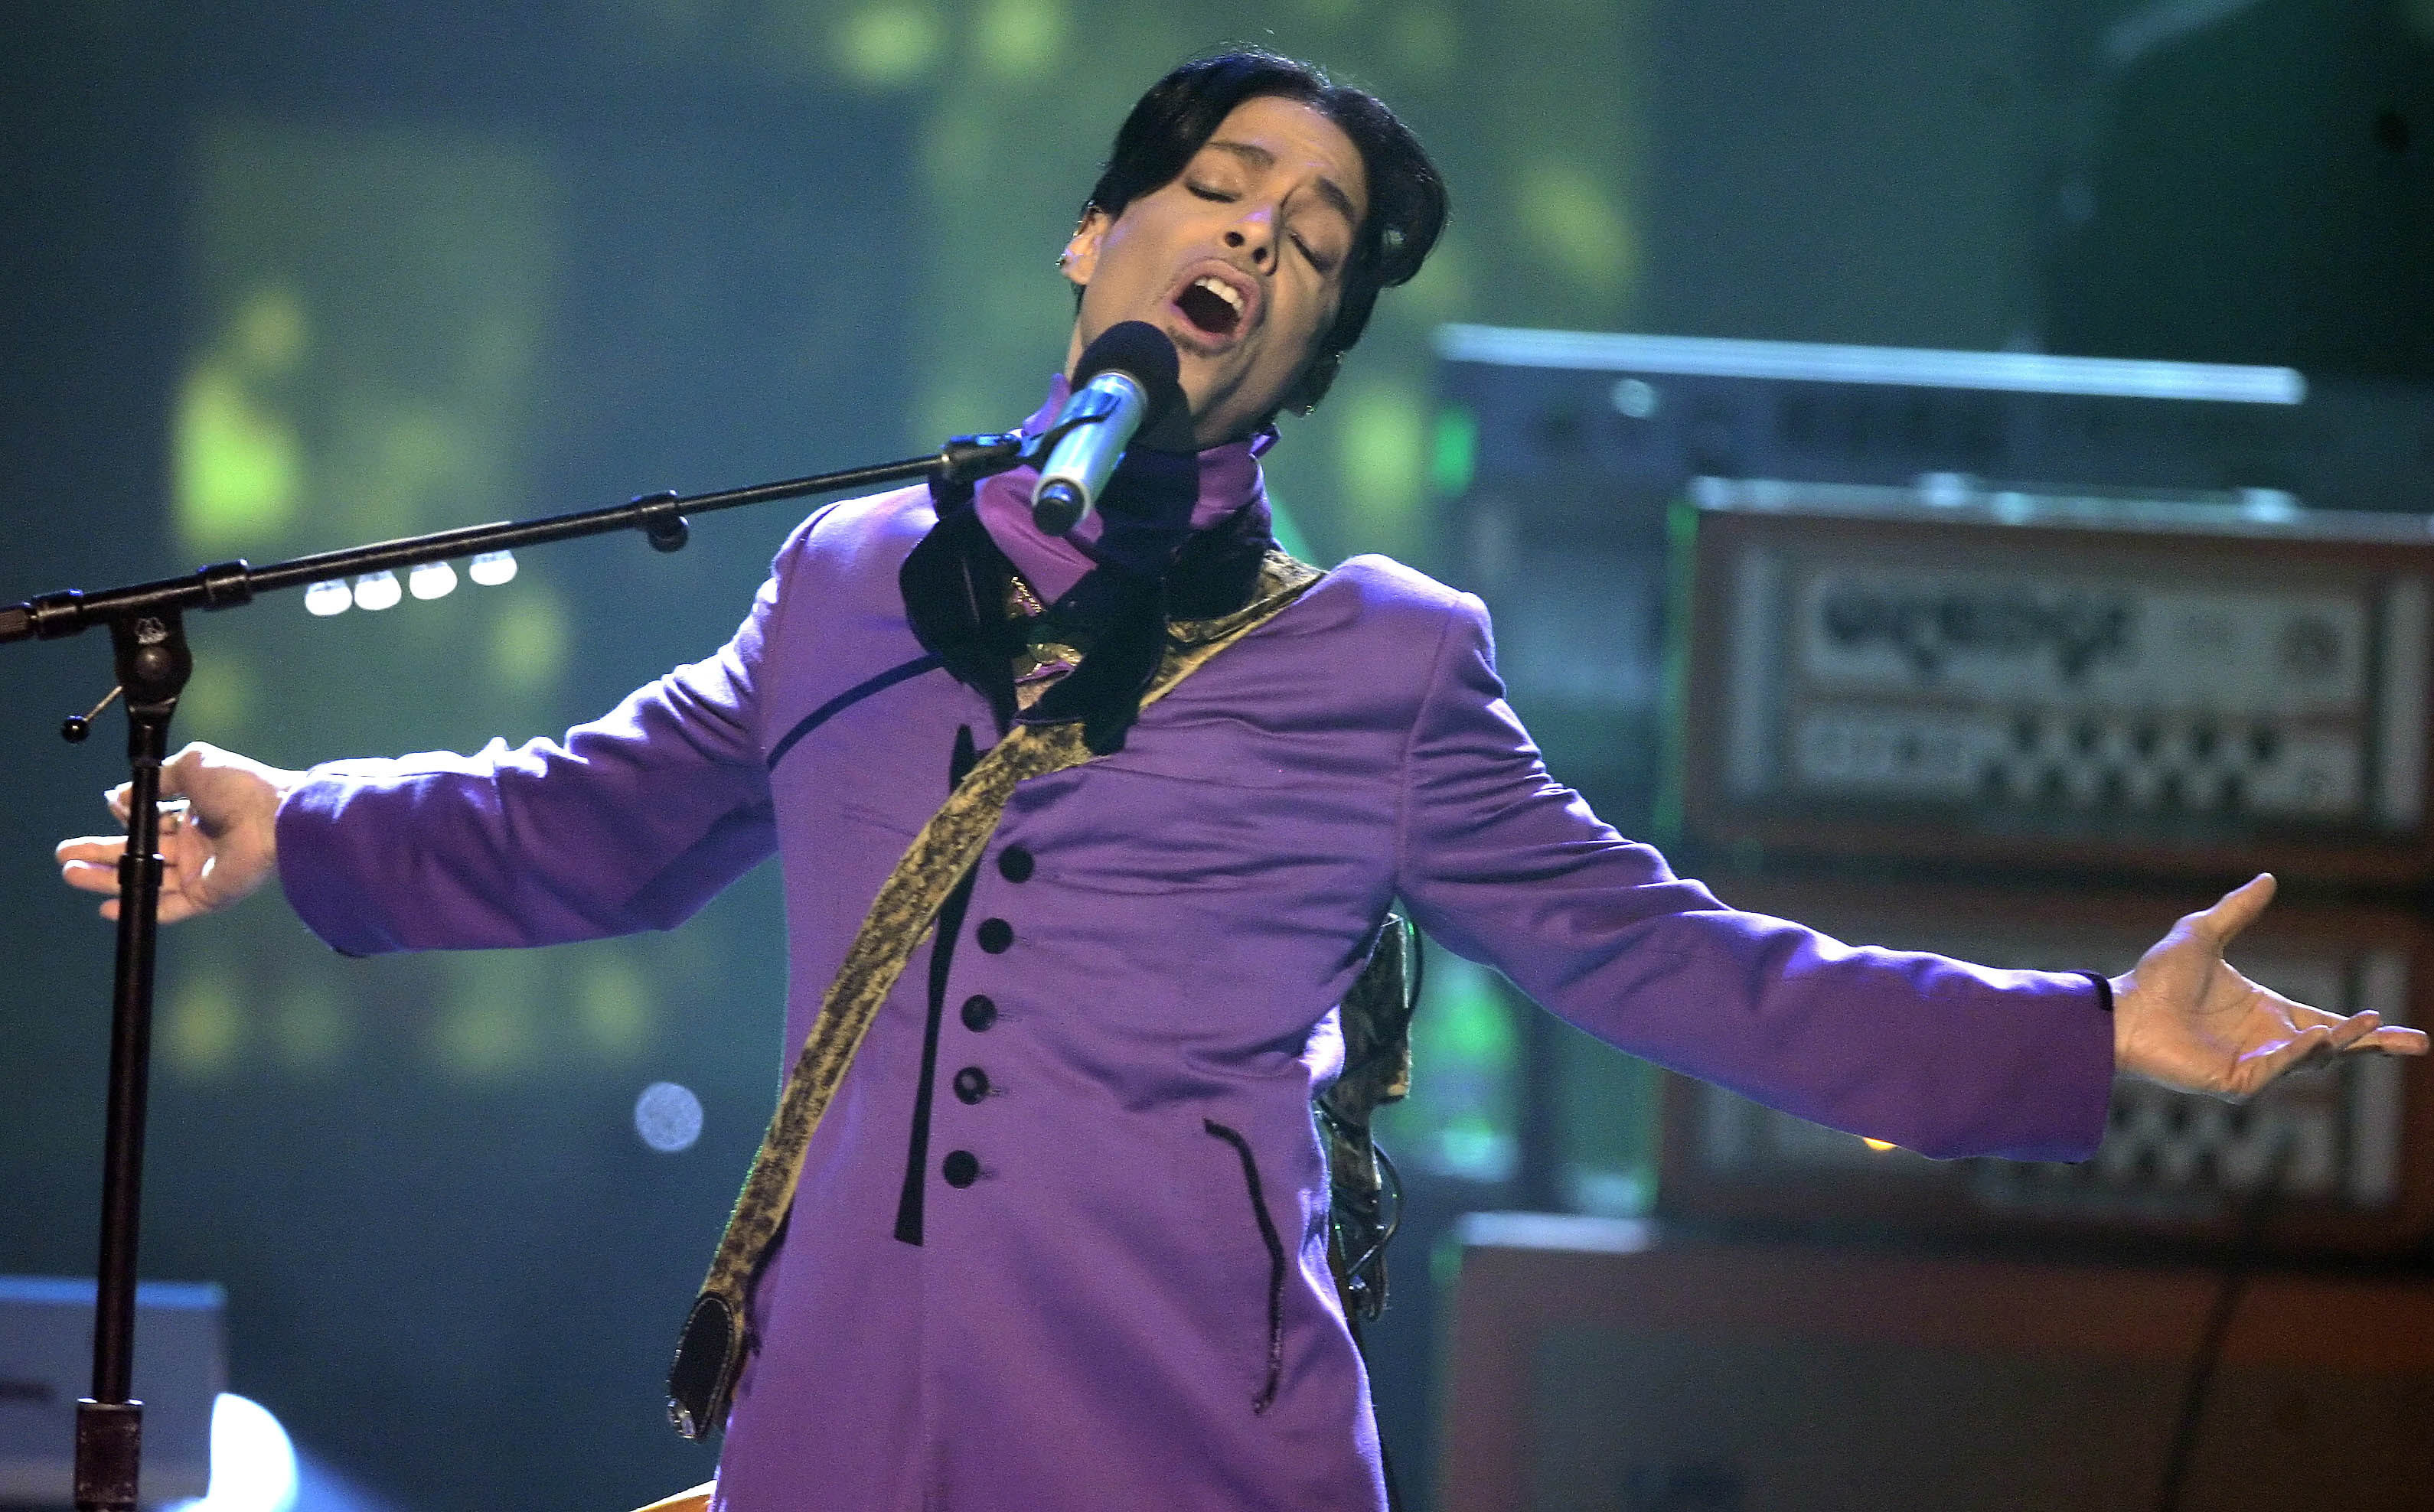 Prince's Sister Drops Bombshell About The Singer's Colour Preferences